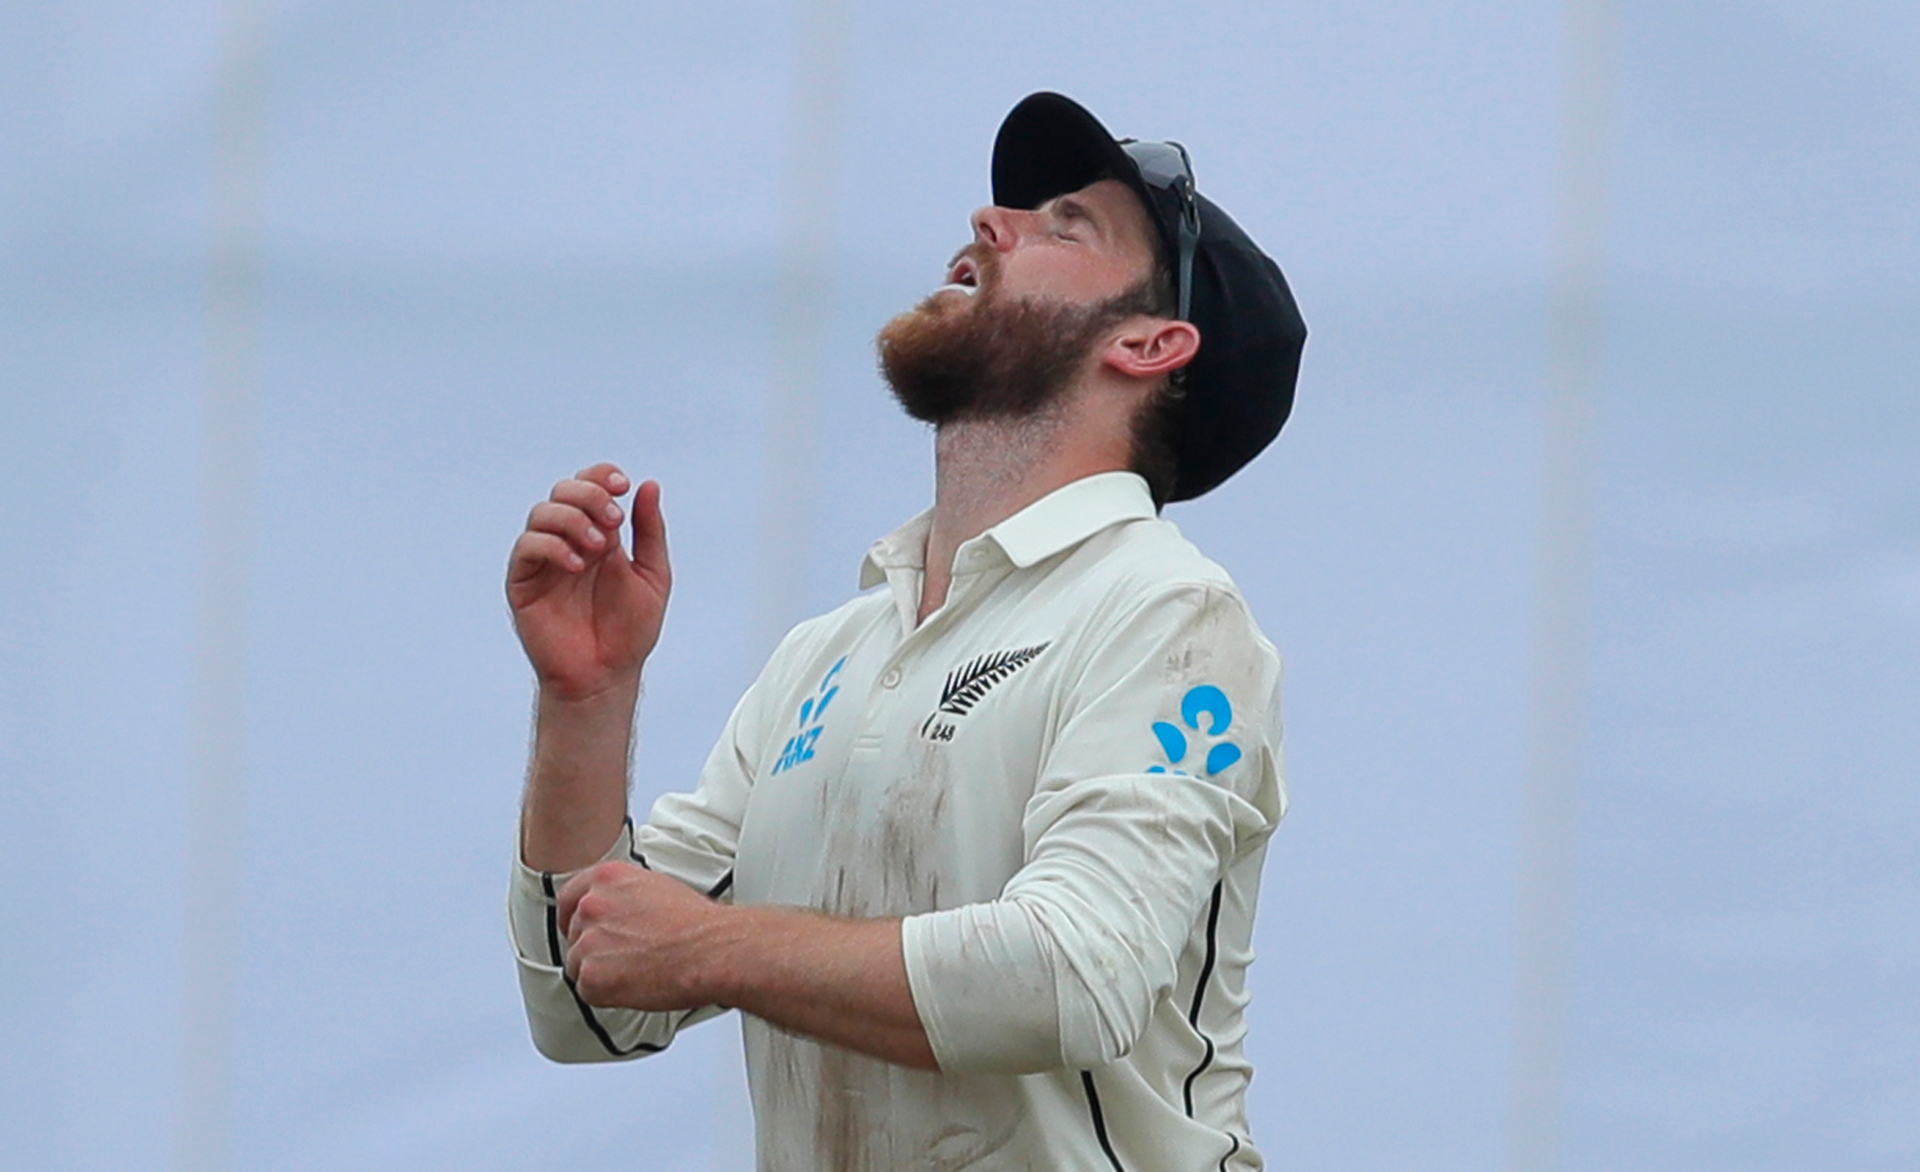 Cricket: Kane Williamson reported for suspect bowling action by ICC